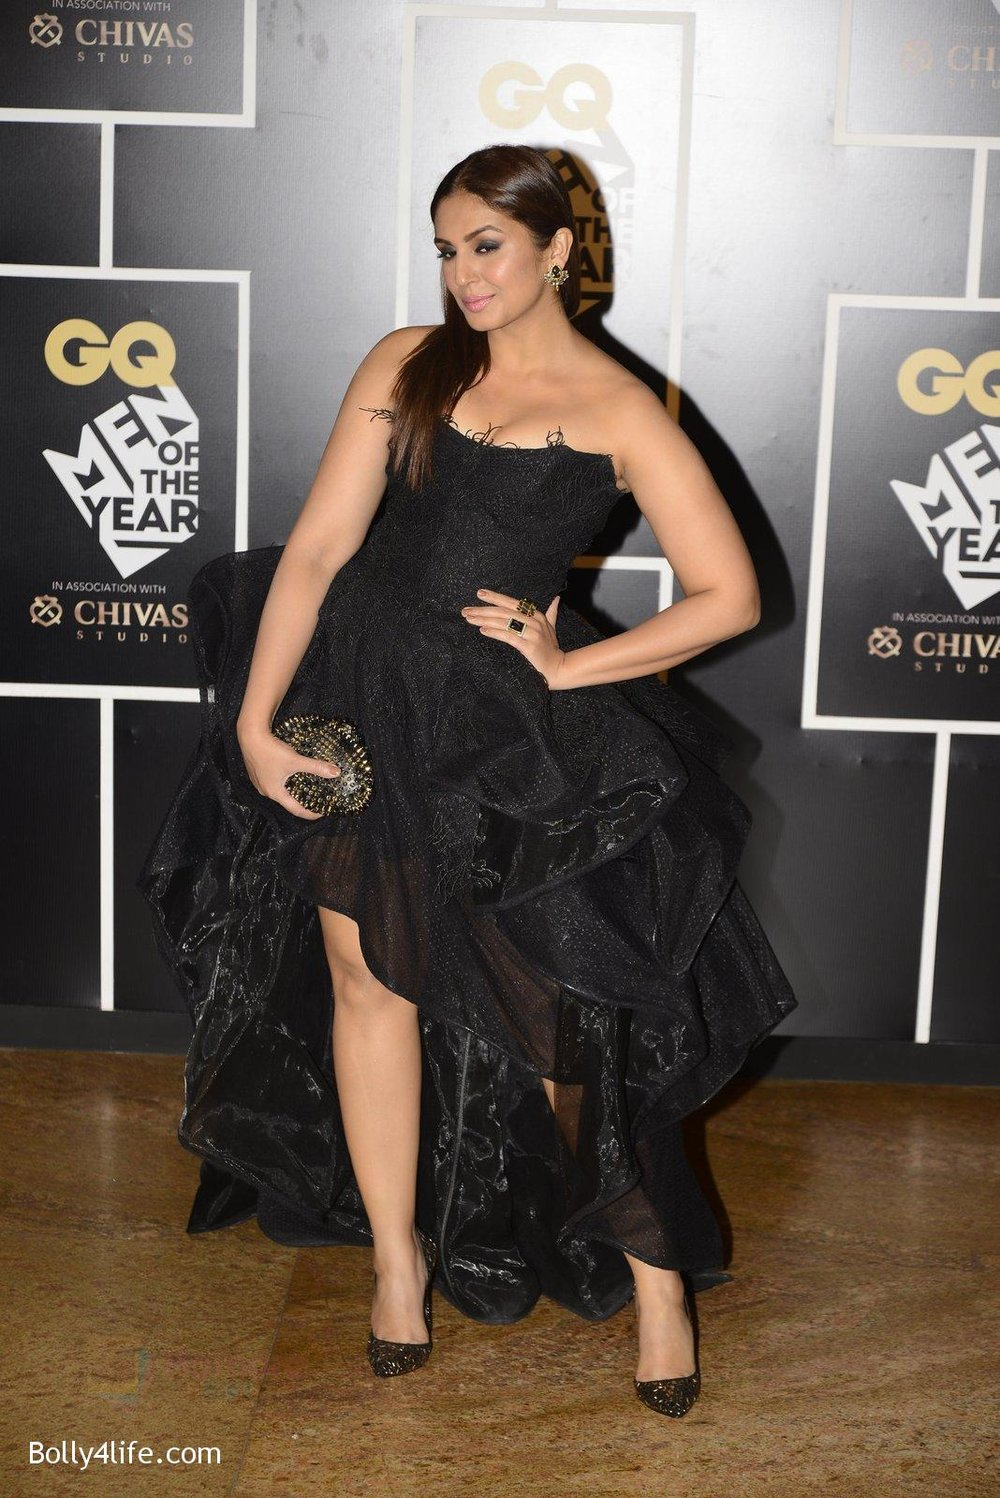 Huma-Qureshi-at-GQ-MEN-OF-THE-YEAR-on-27th-Sept-2016-1197.jpg